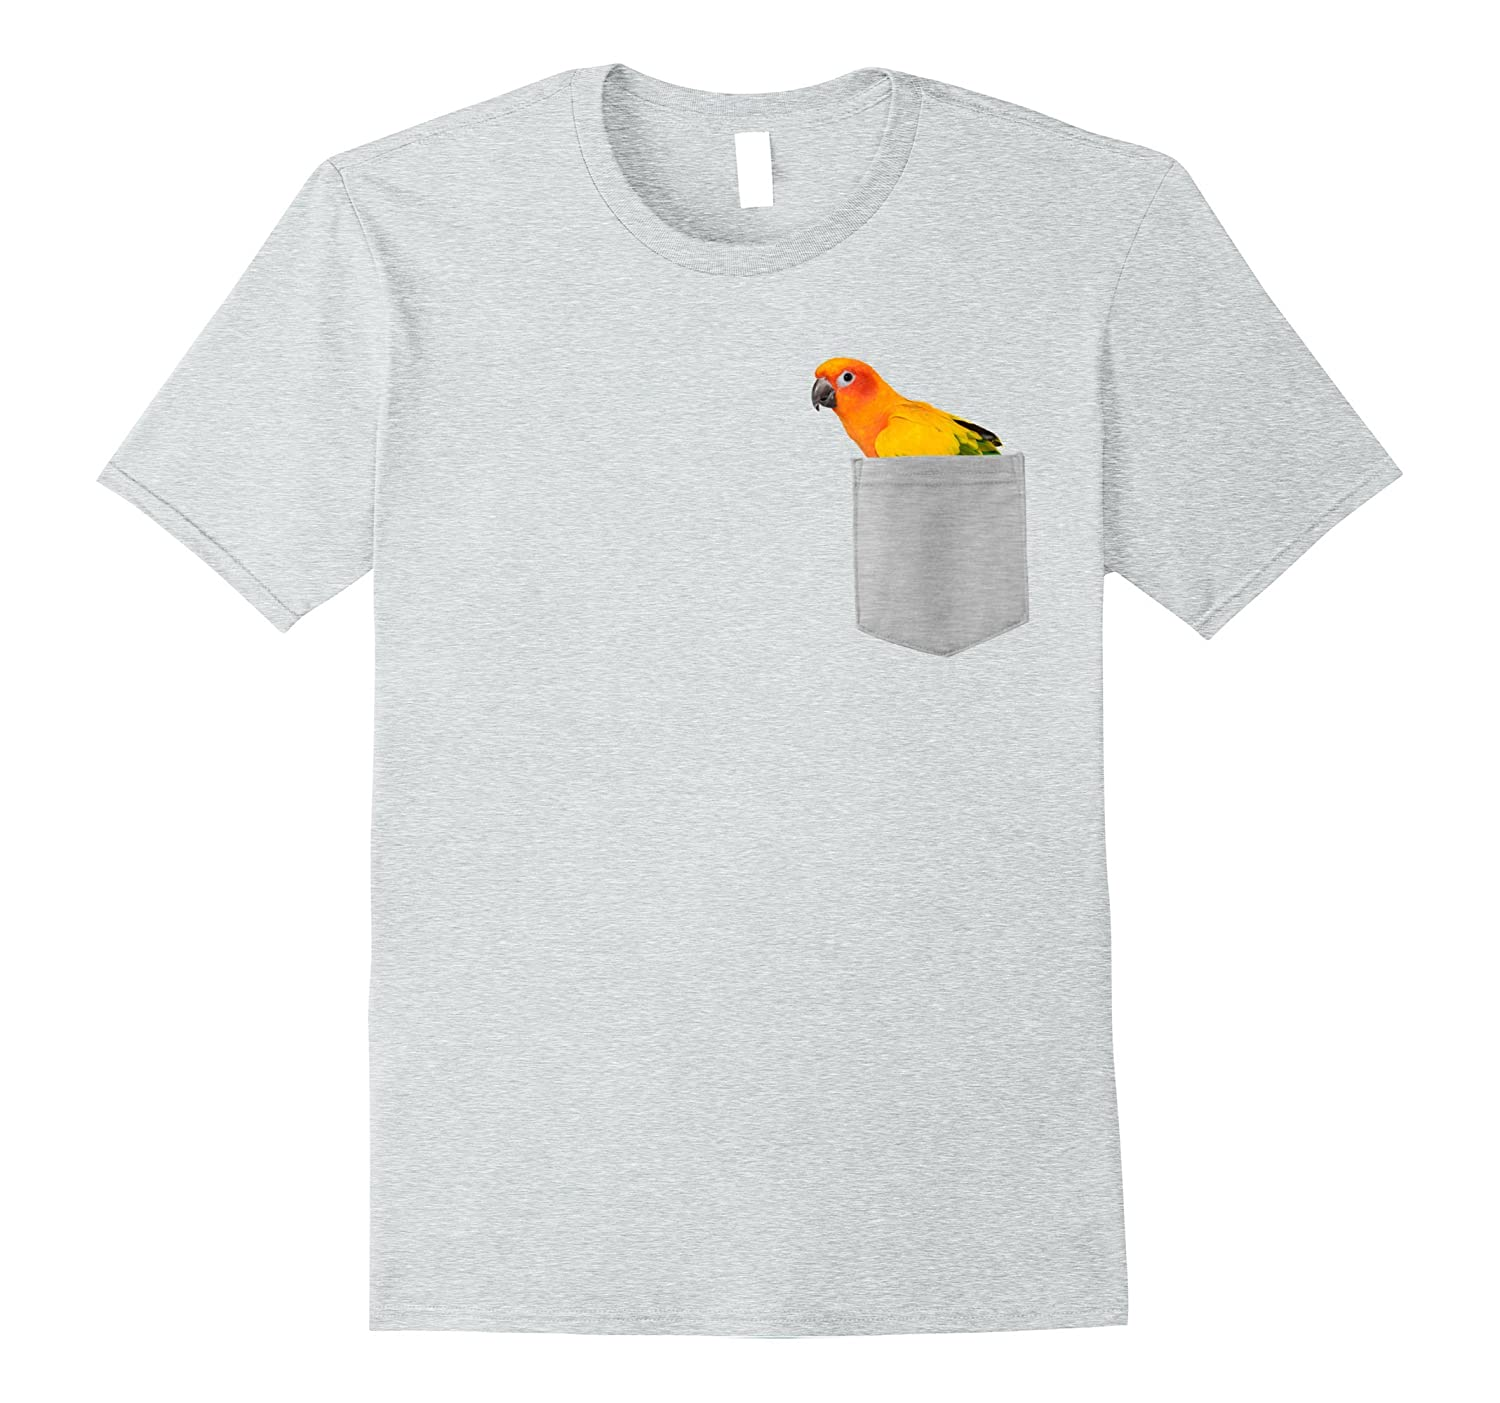 8d3e77618 Animal in Your Pocket Sun Conure Parrot t shirt-ah my shirt one gift ...